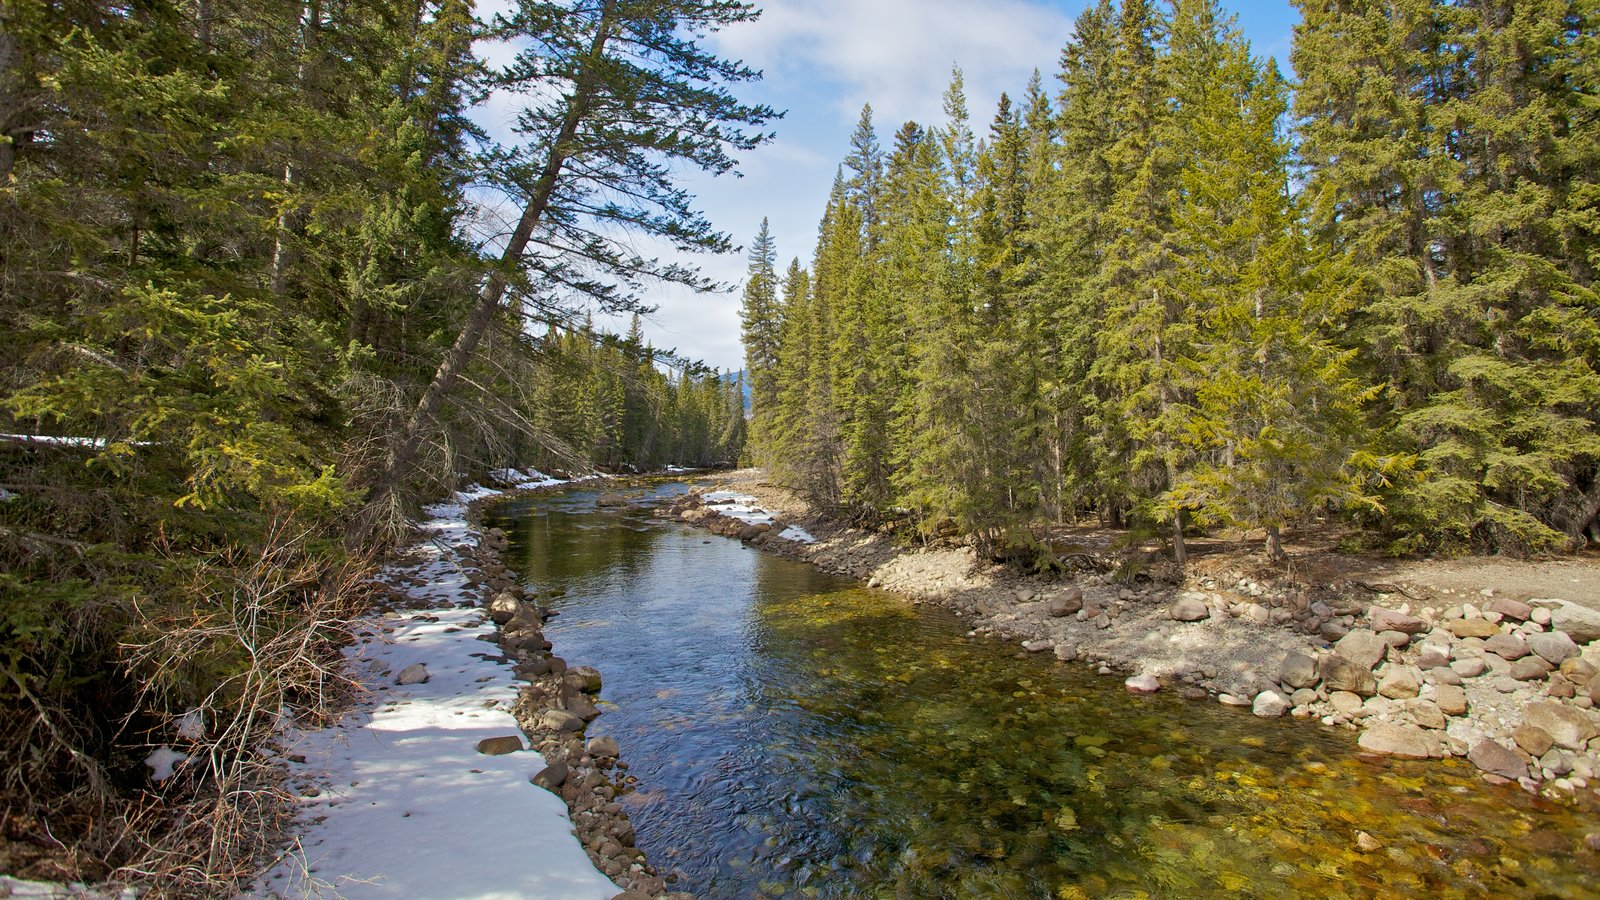 Jasper National Park which includes forest scenes and a river or creek